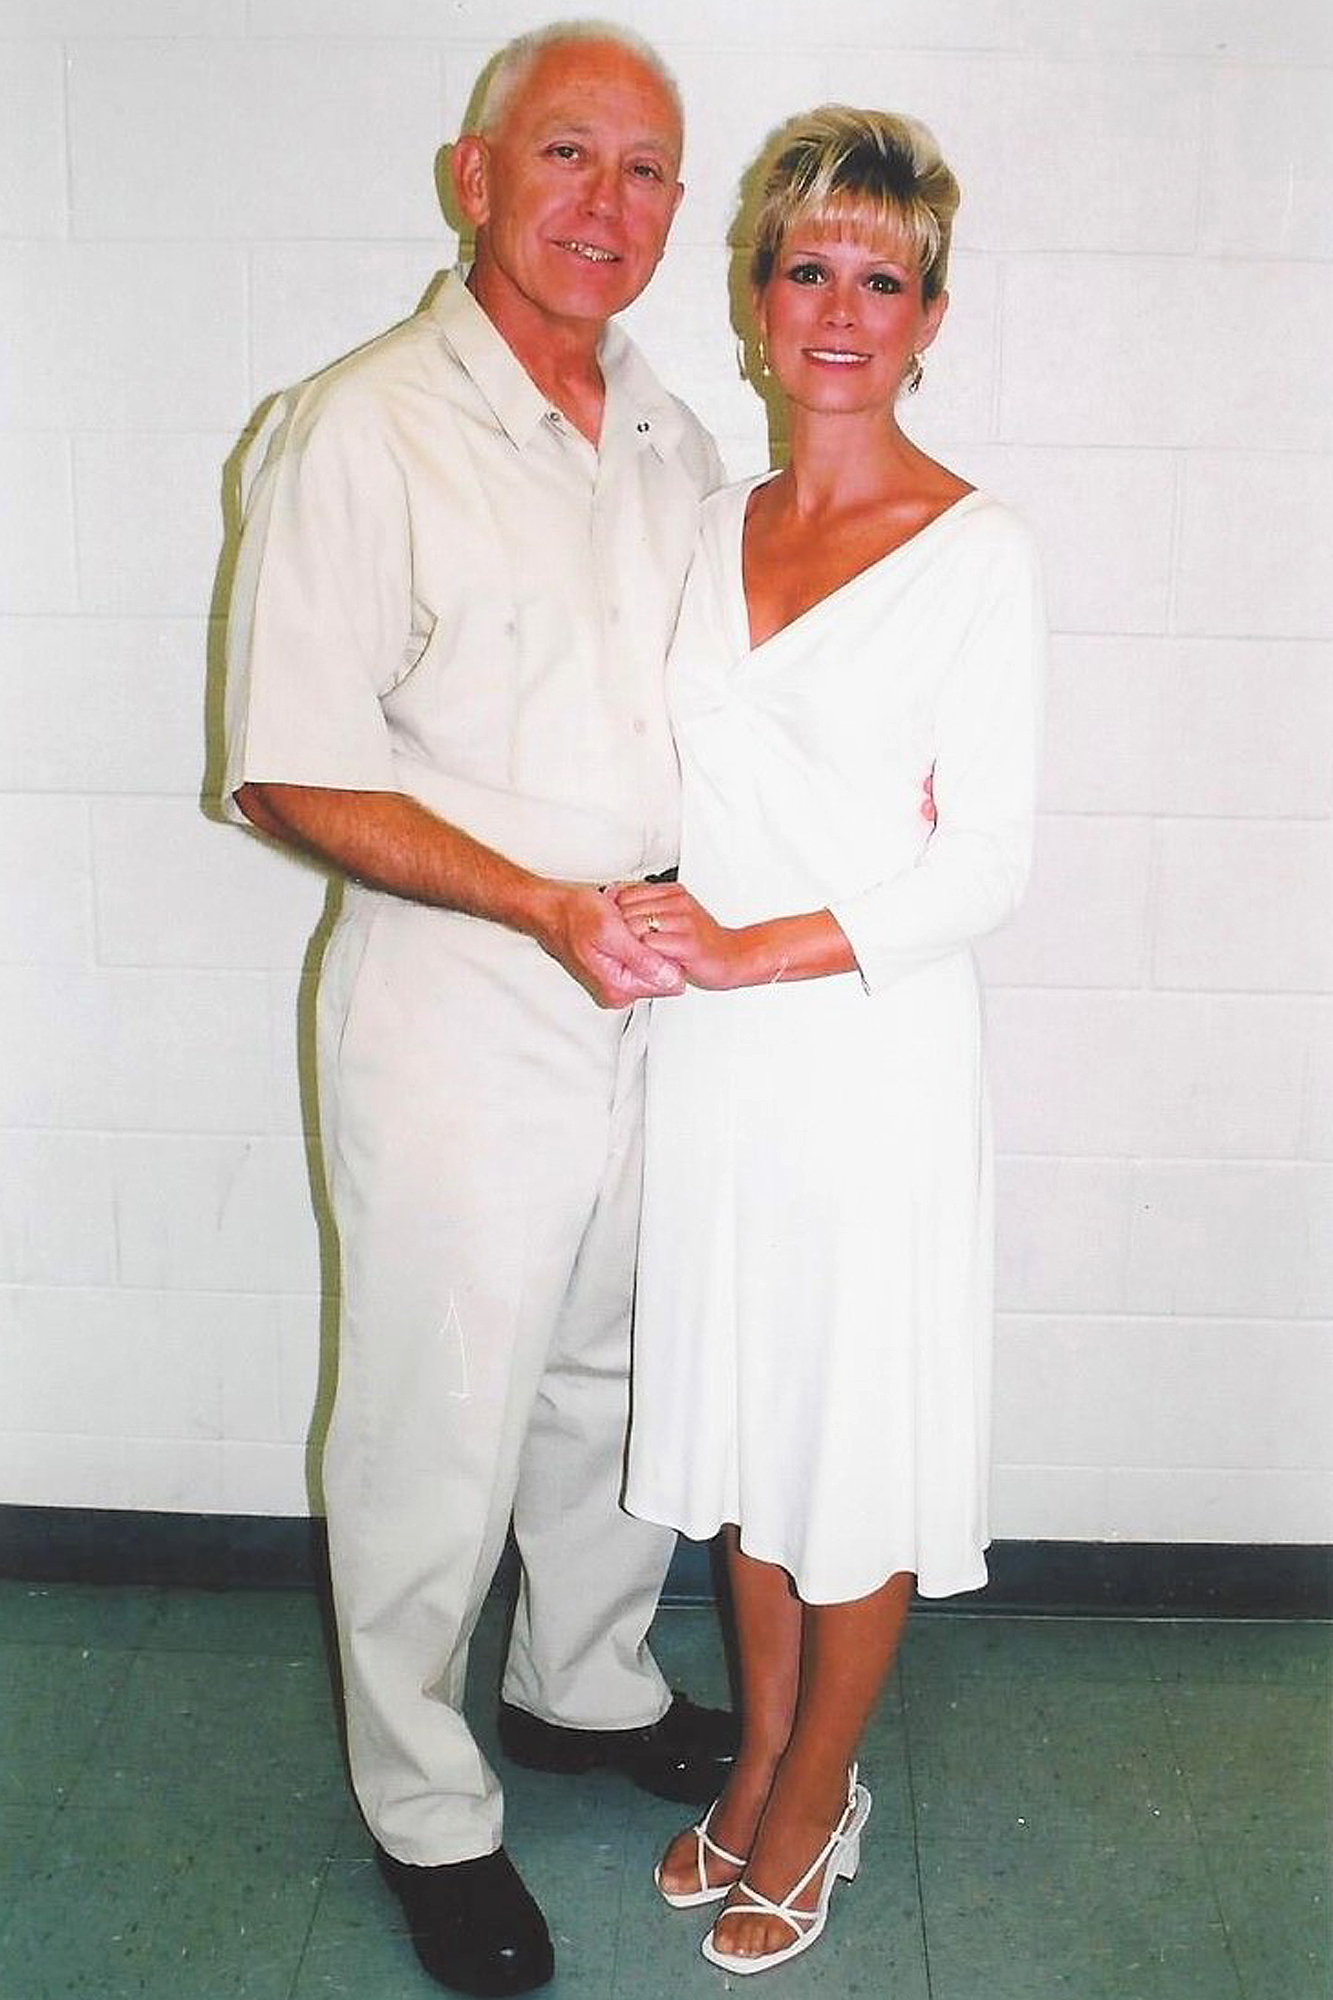 Kathryn and Jeff MacDonald's wedding, August 30, 2002, Legal Room at FCI Victorville, CA. first photo right after the ceremony. the inmate who took the photo stole rice from the kitchen to through at the couple.